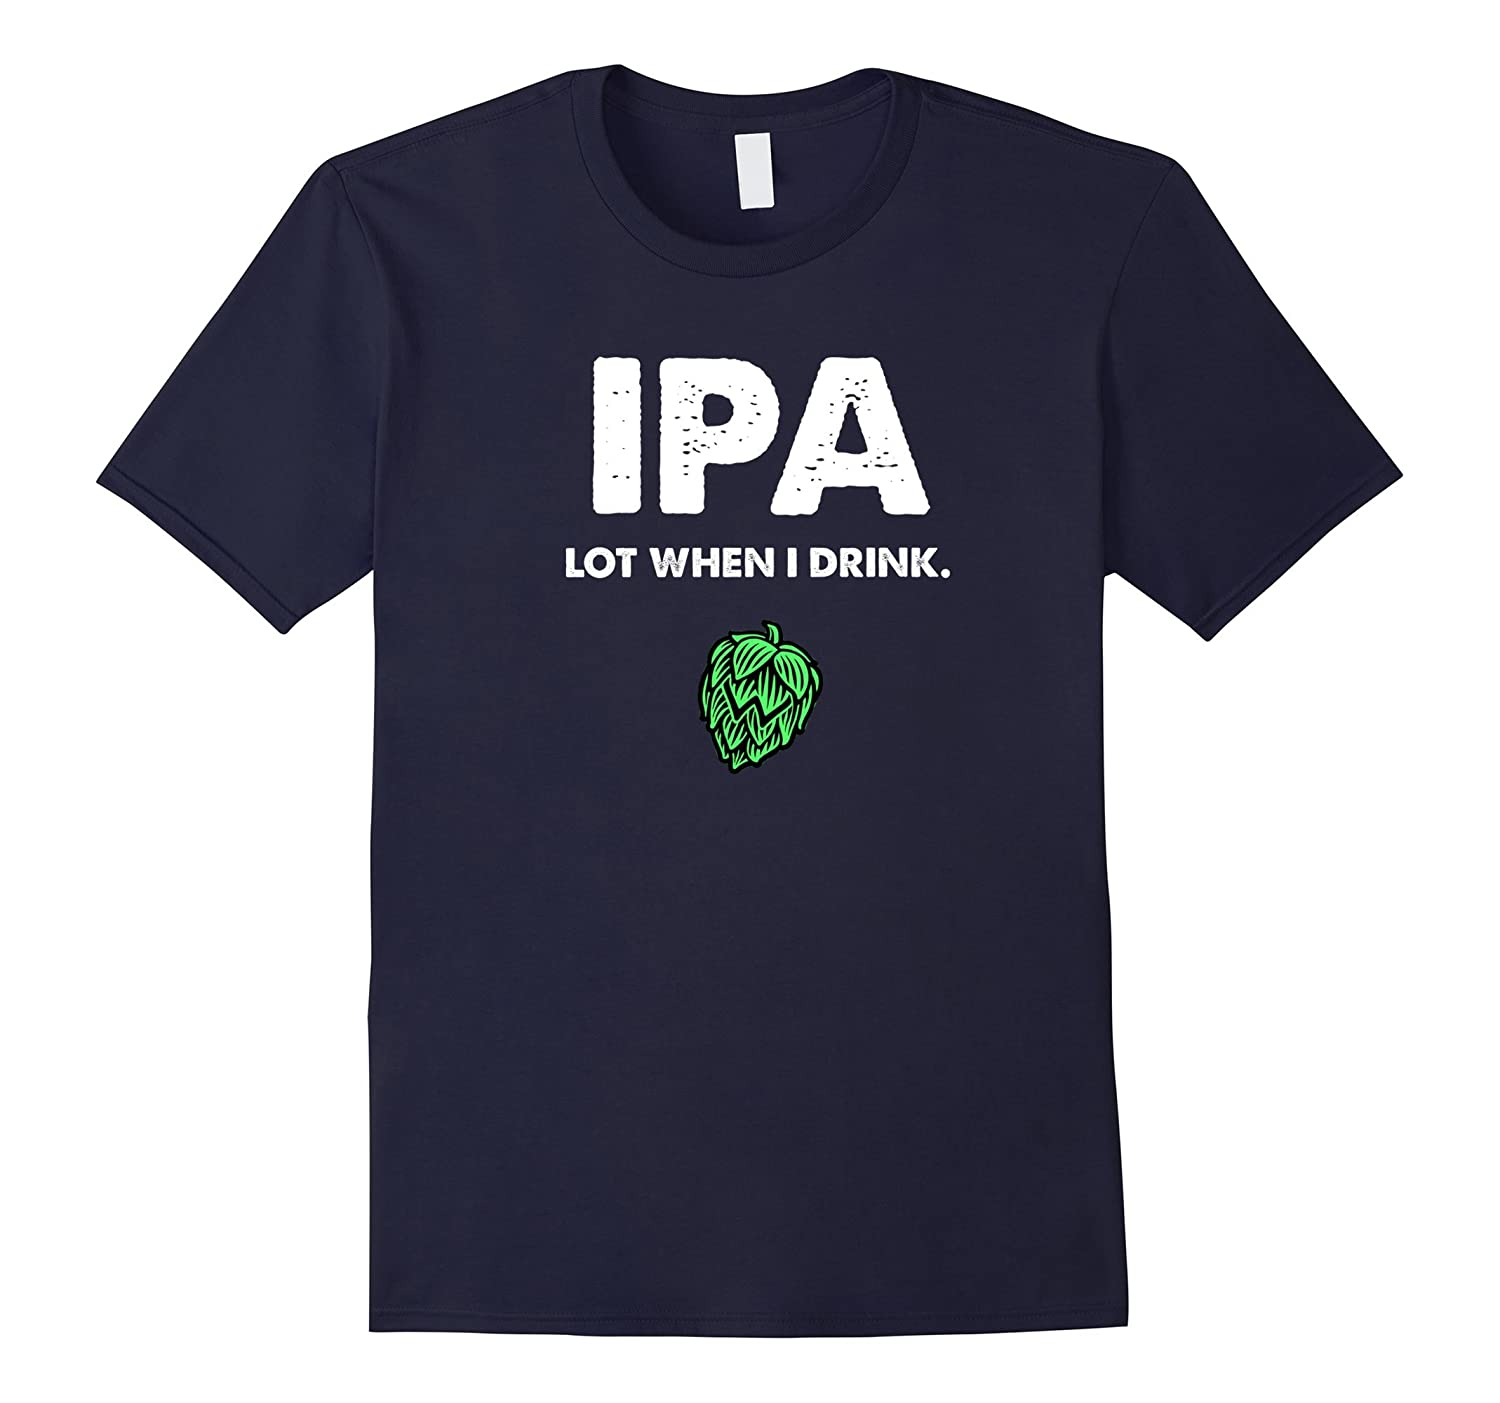 IPA Lot When I Drink - Funny Drinking Shirt Brewing  Beer-TD